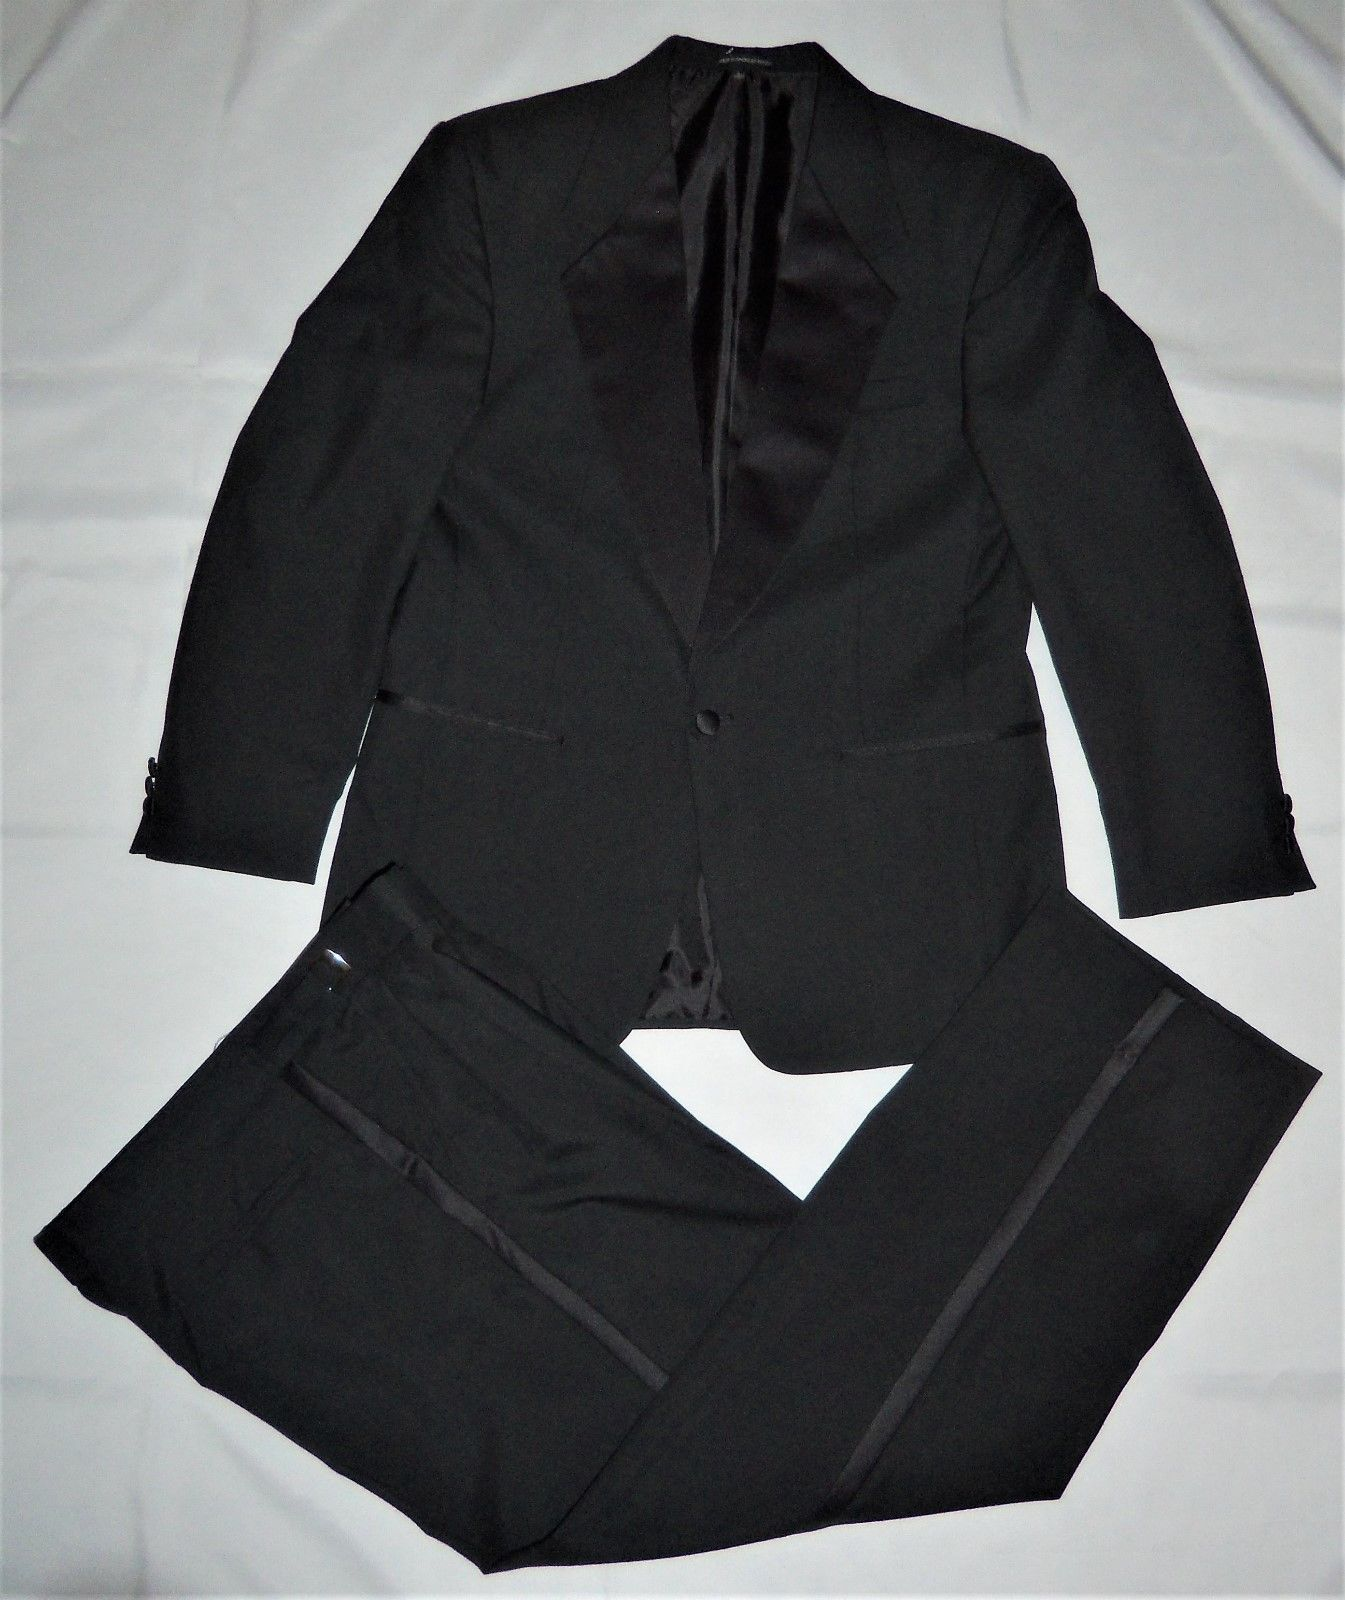 Primary image for Neilallyn Formal Tuxedo Suit 40R Jacket & Pants 33 34 35 Reg Adjustable Waist